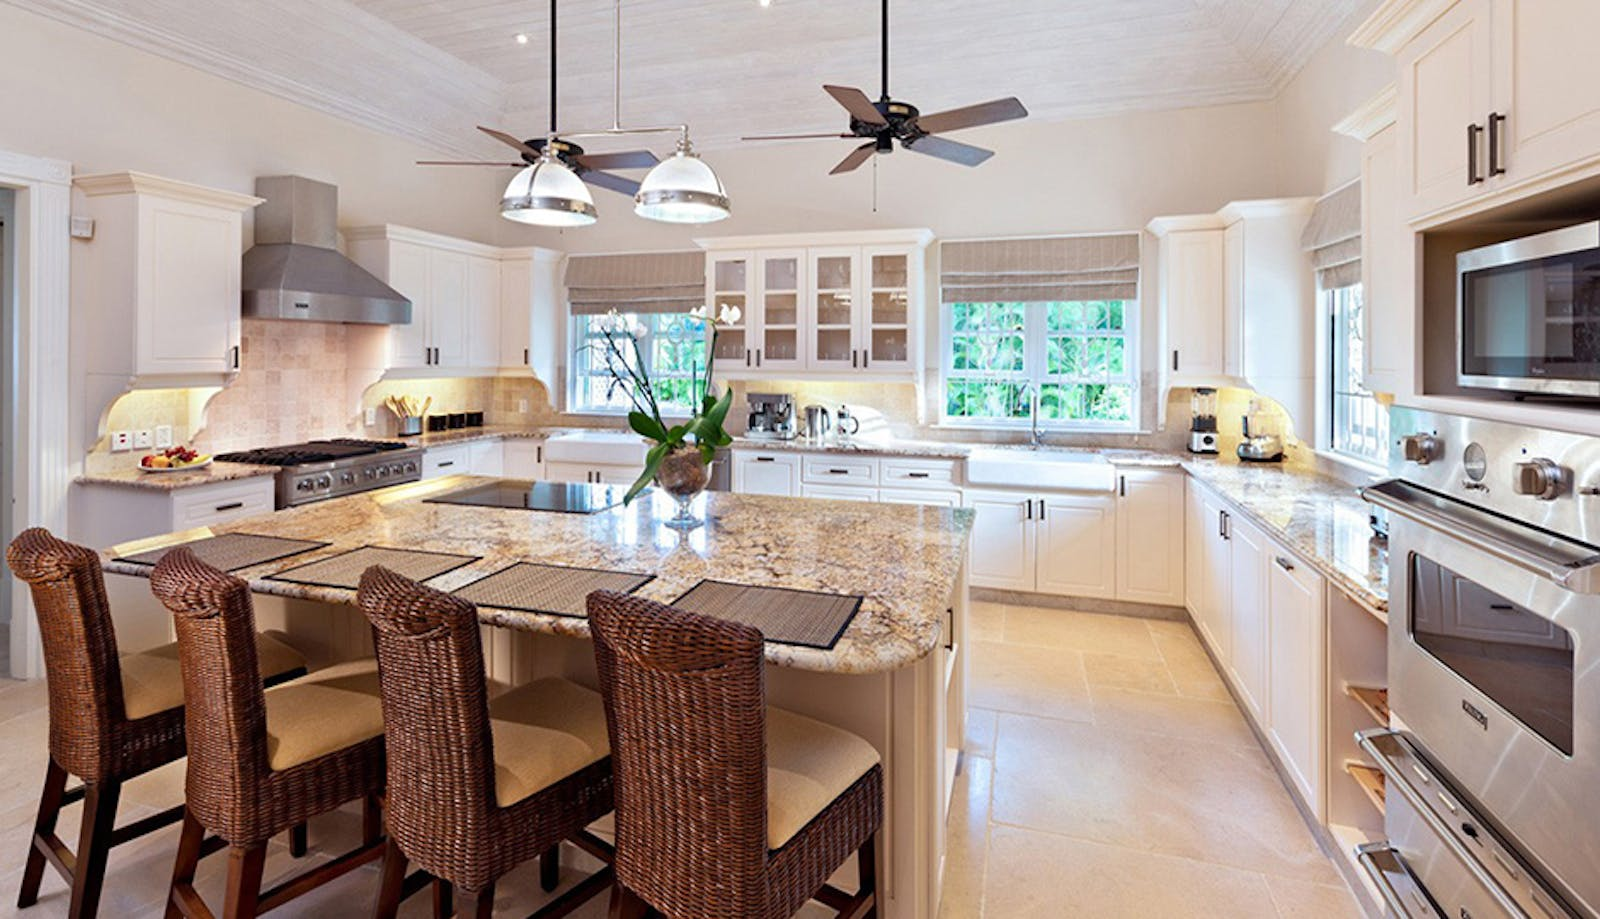 Kitchen Area at Windward House Villa, Sandy Lane Barbados